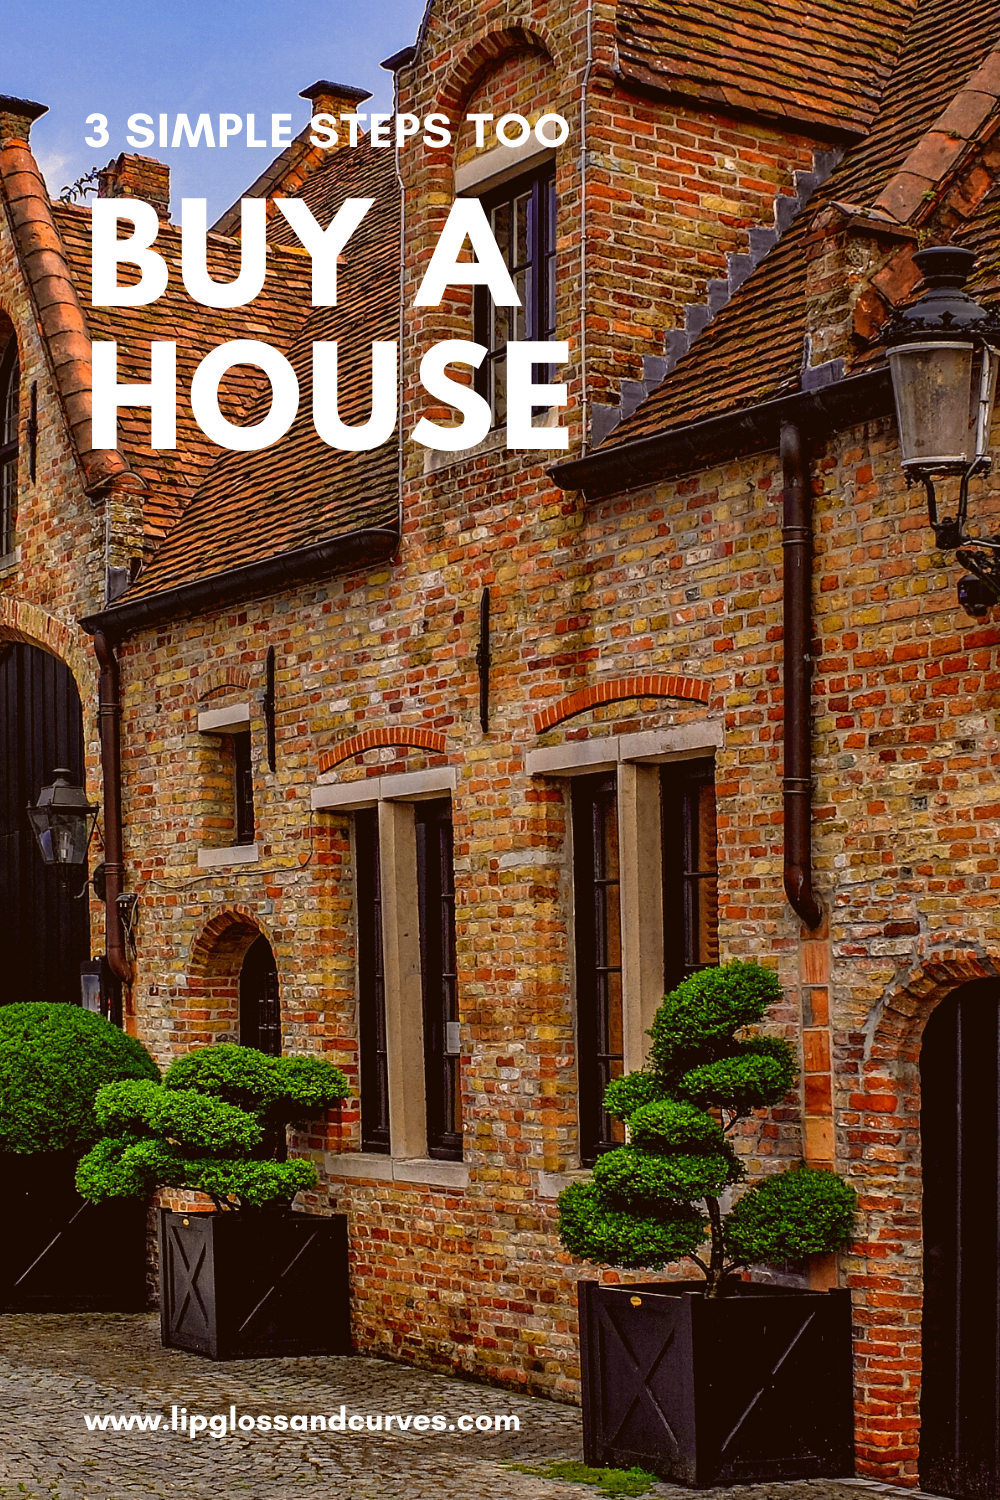 3 simple steps to buy a house